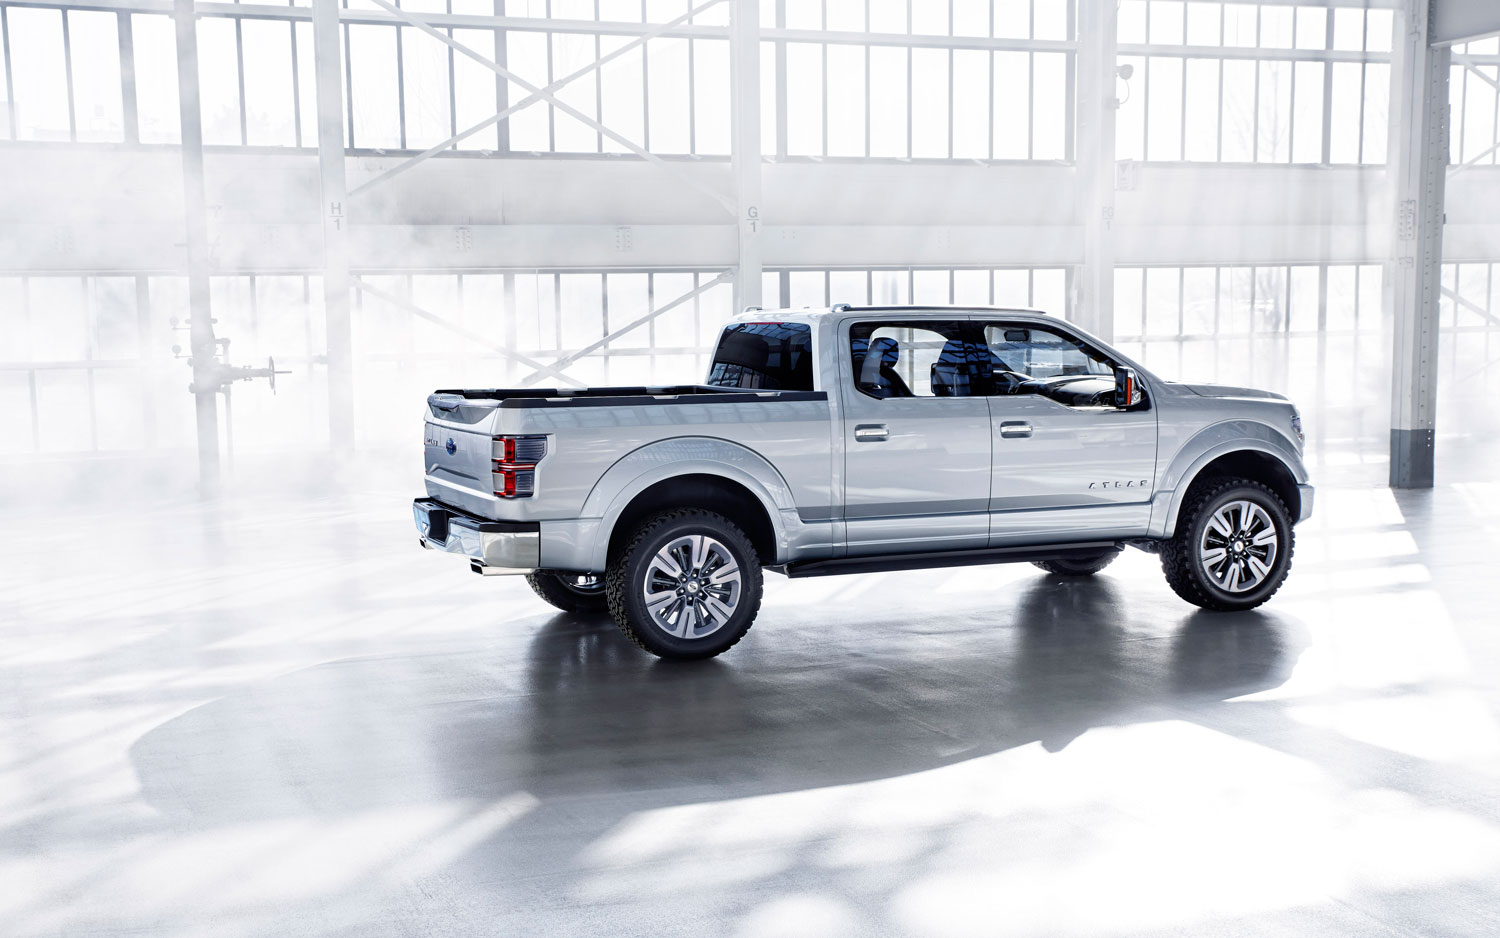 2013 Ford Atlas Concept | Cars Sketches